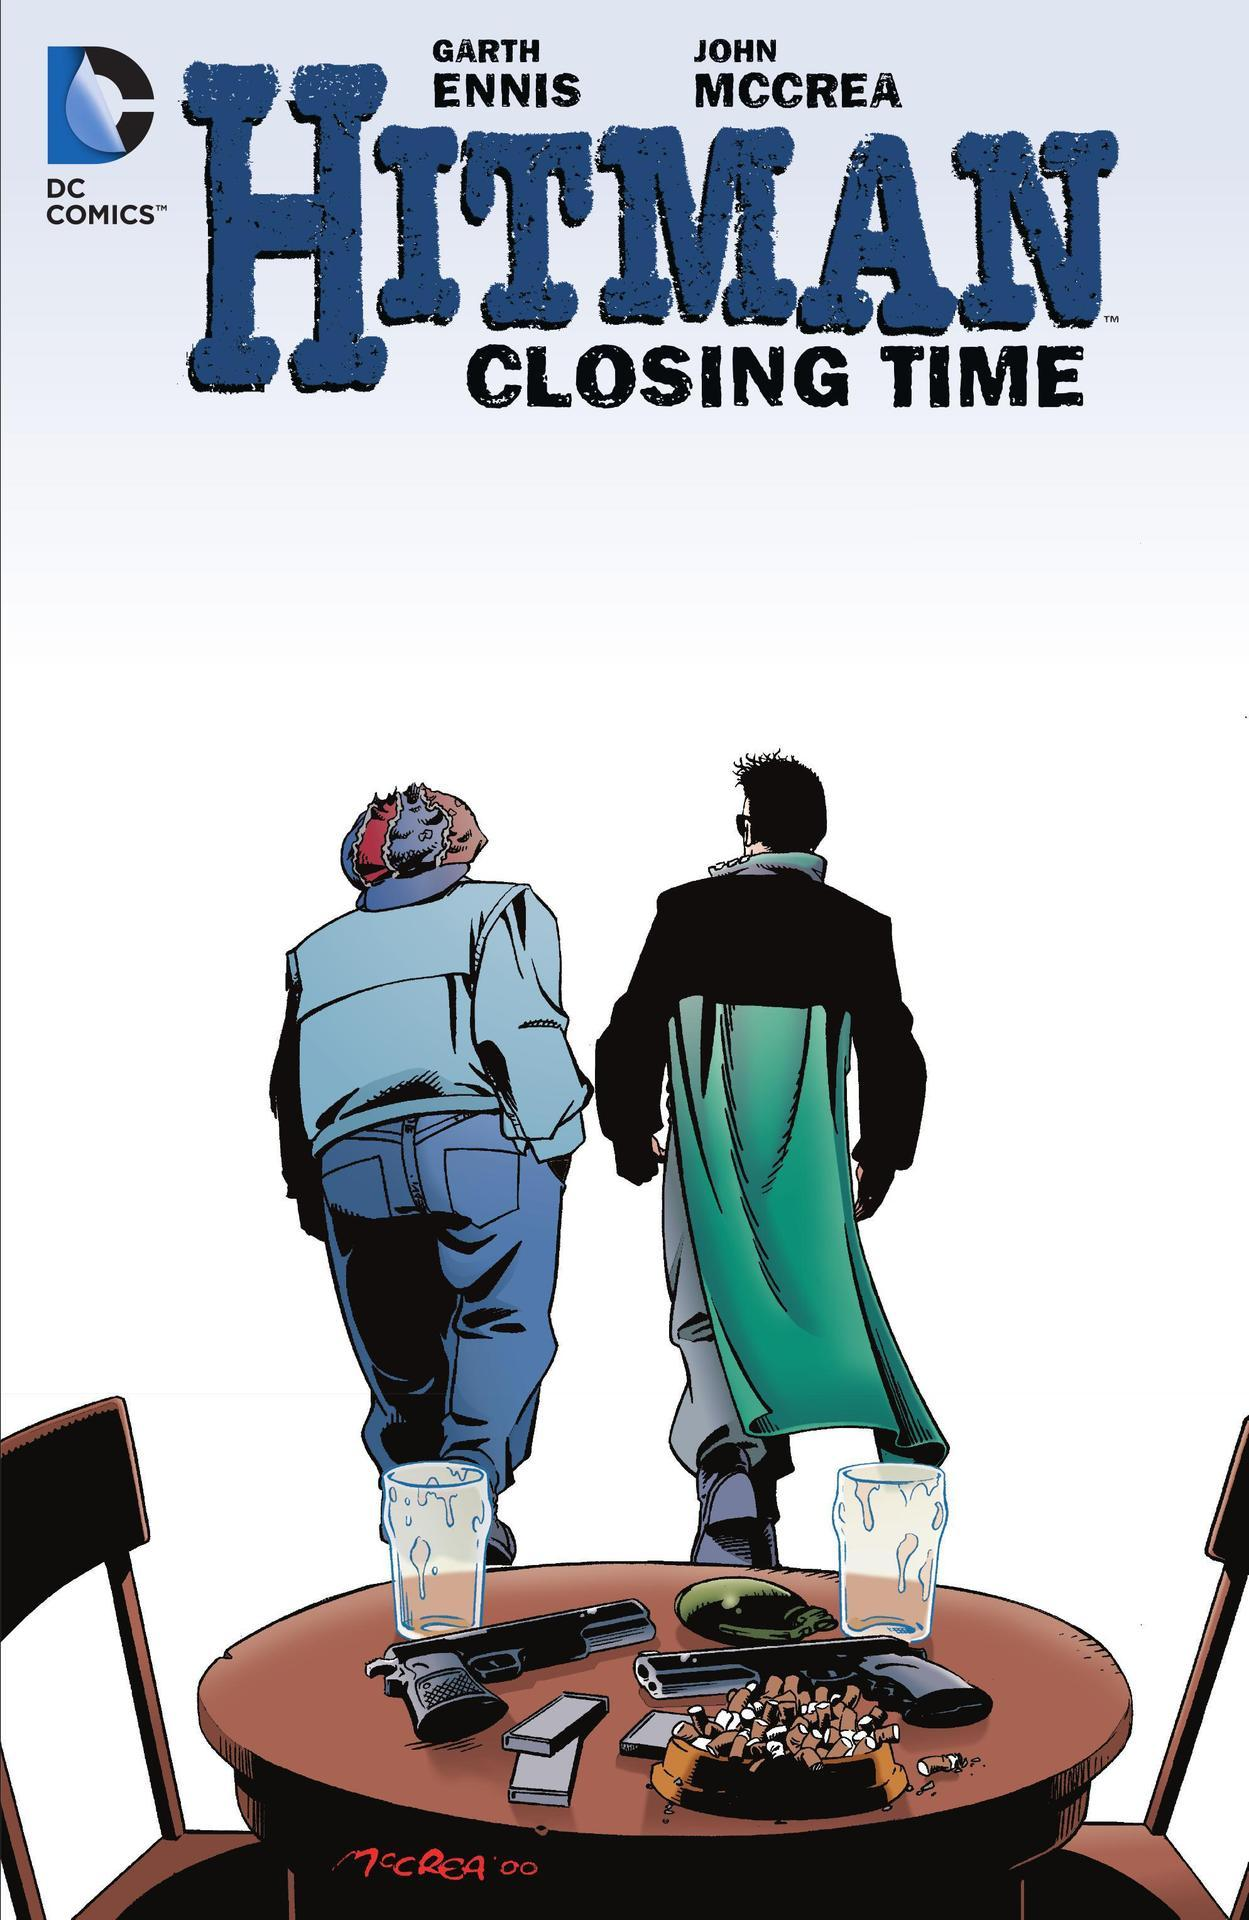 Hitman - Closing Time - Garth Ennis & John McCrea (Comics)